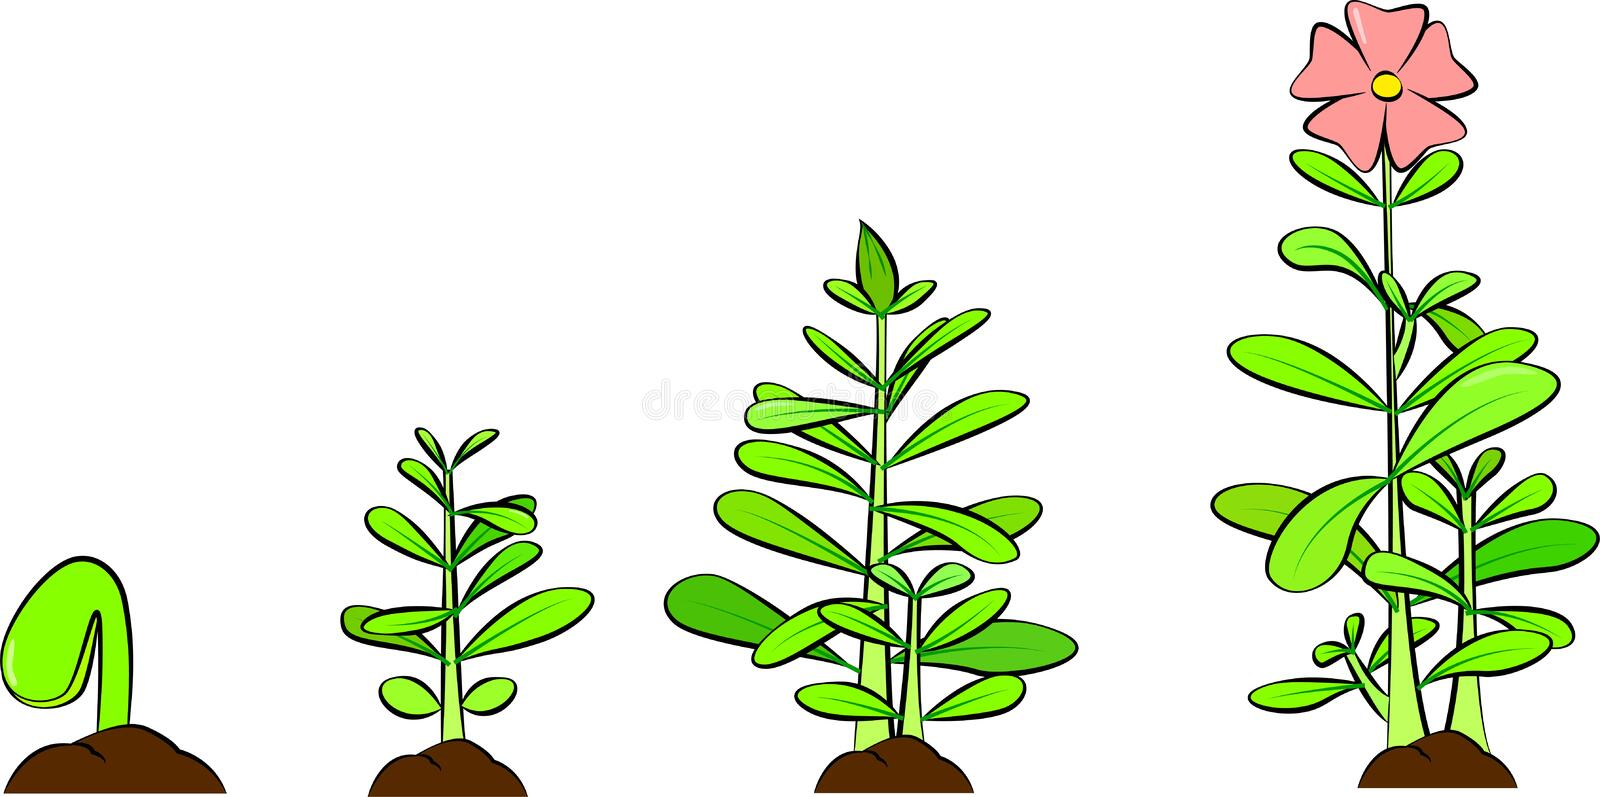 Phases of a plant growing. Vector of seed germinating on the ground. White background. Life cycle and evolution concept. royalty free illustration